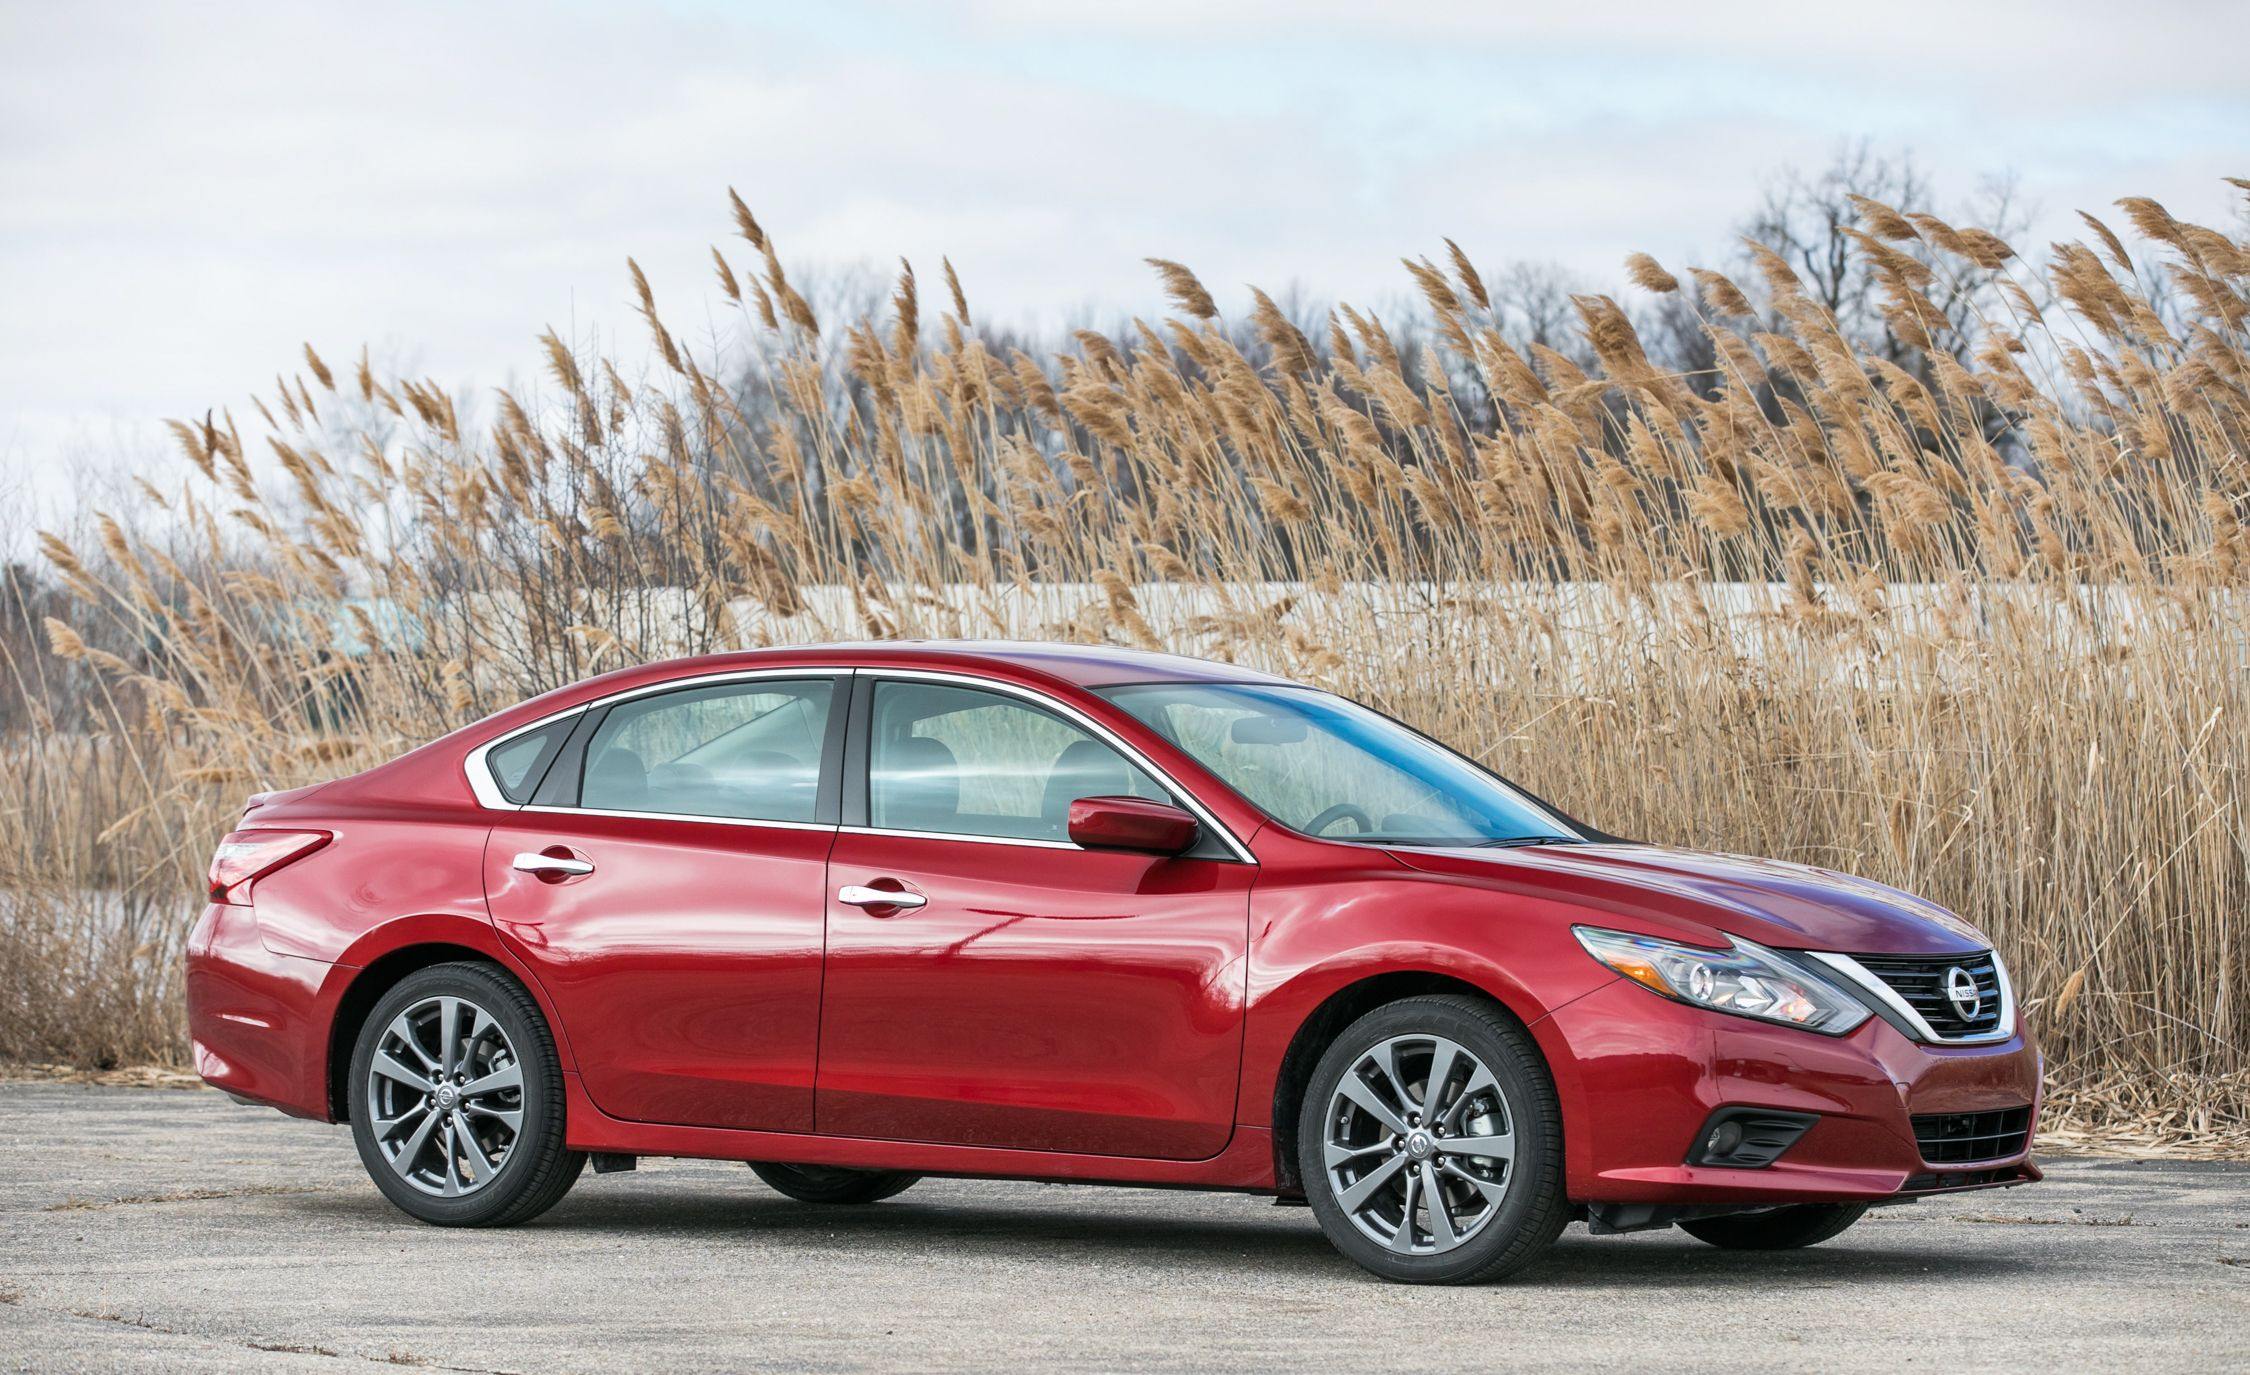 Nissan Altima Reviews   Nissan Altima Price, Photos, And Specs   Car And  Driver